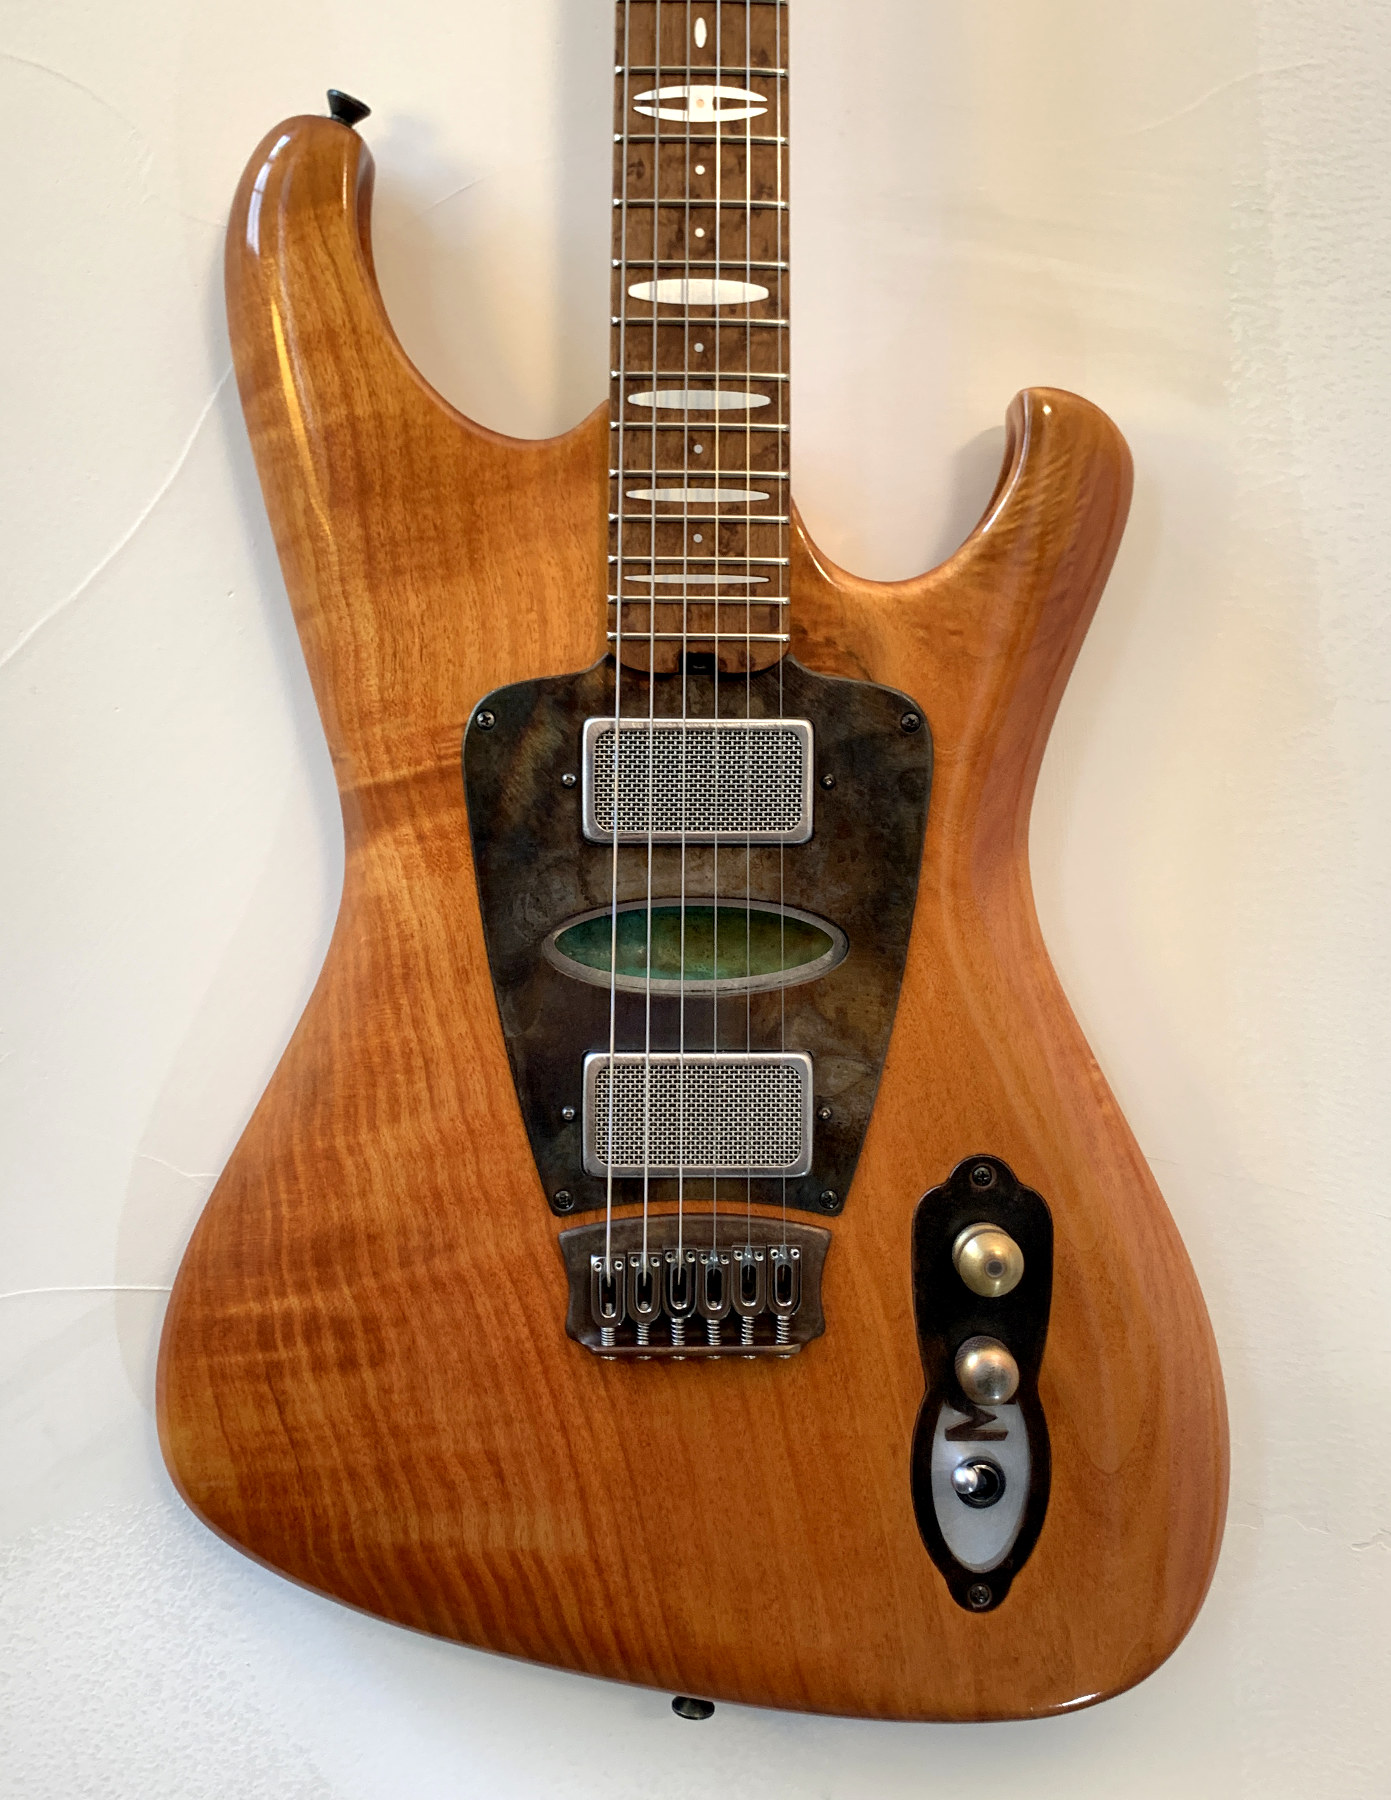 Hypersonic - The Hypersonic is a thinner double cut solid body guitar with a flush inlaid control plate and distinctive hollow routs in the horns.